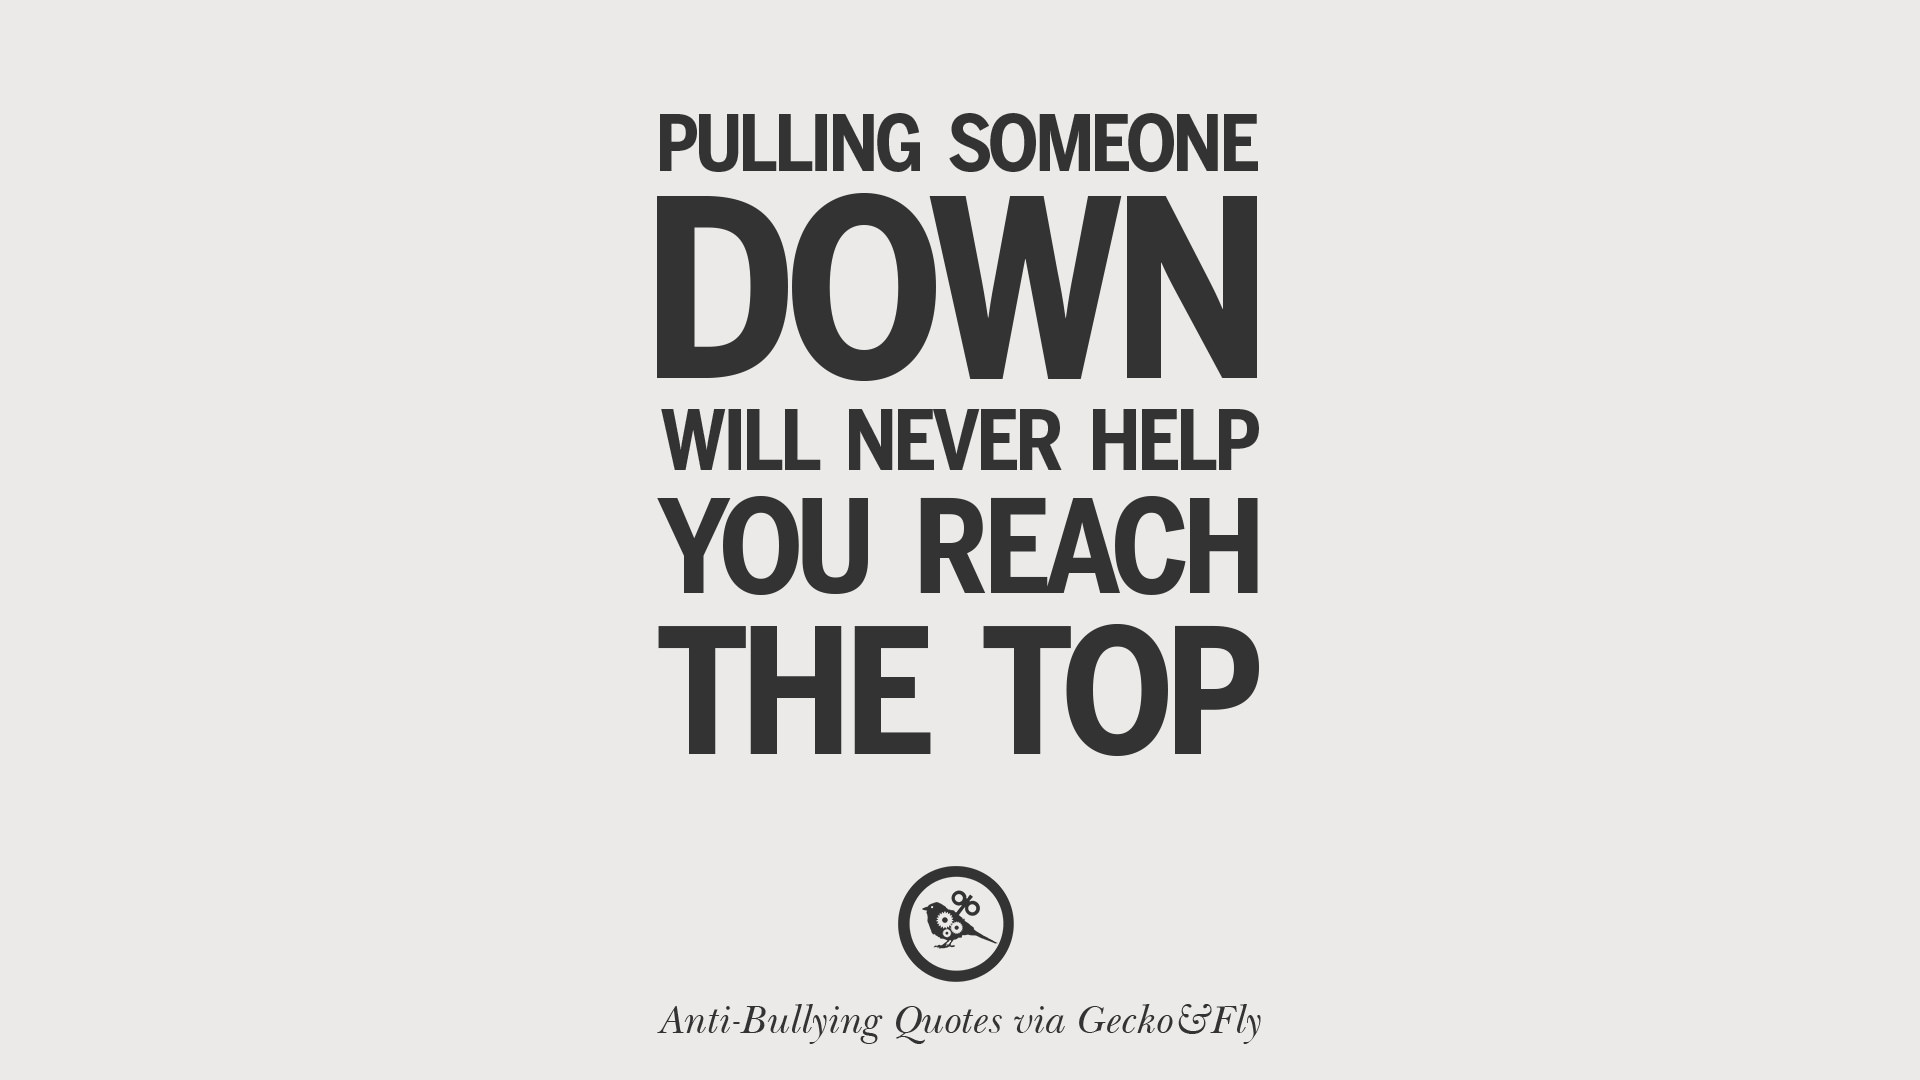 Bullying Quotes 12 Quotes On Anti Cyber Bulling And Social Bullying Effects